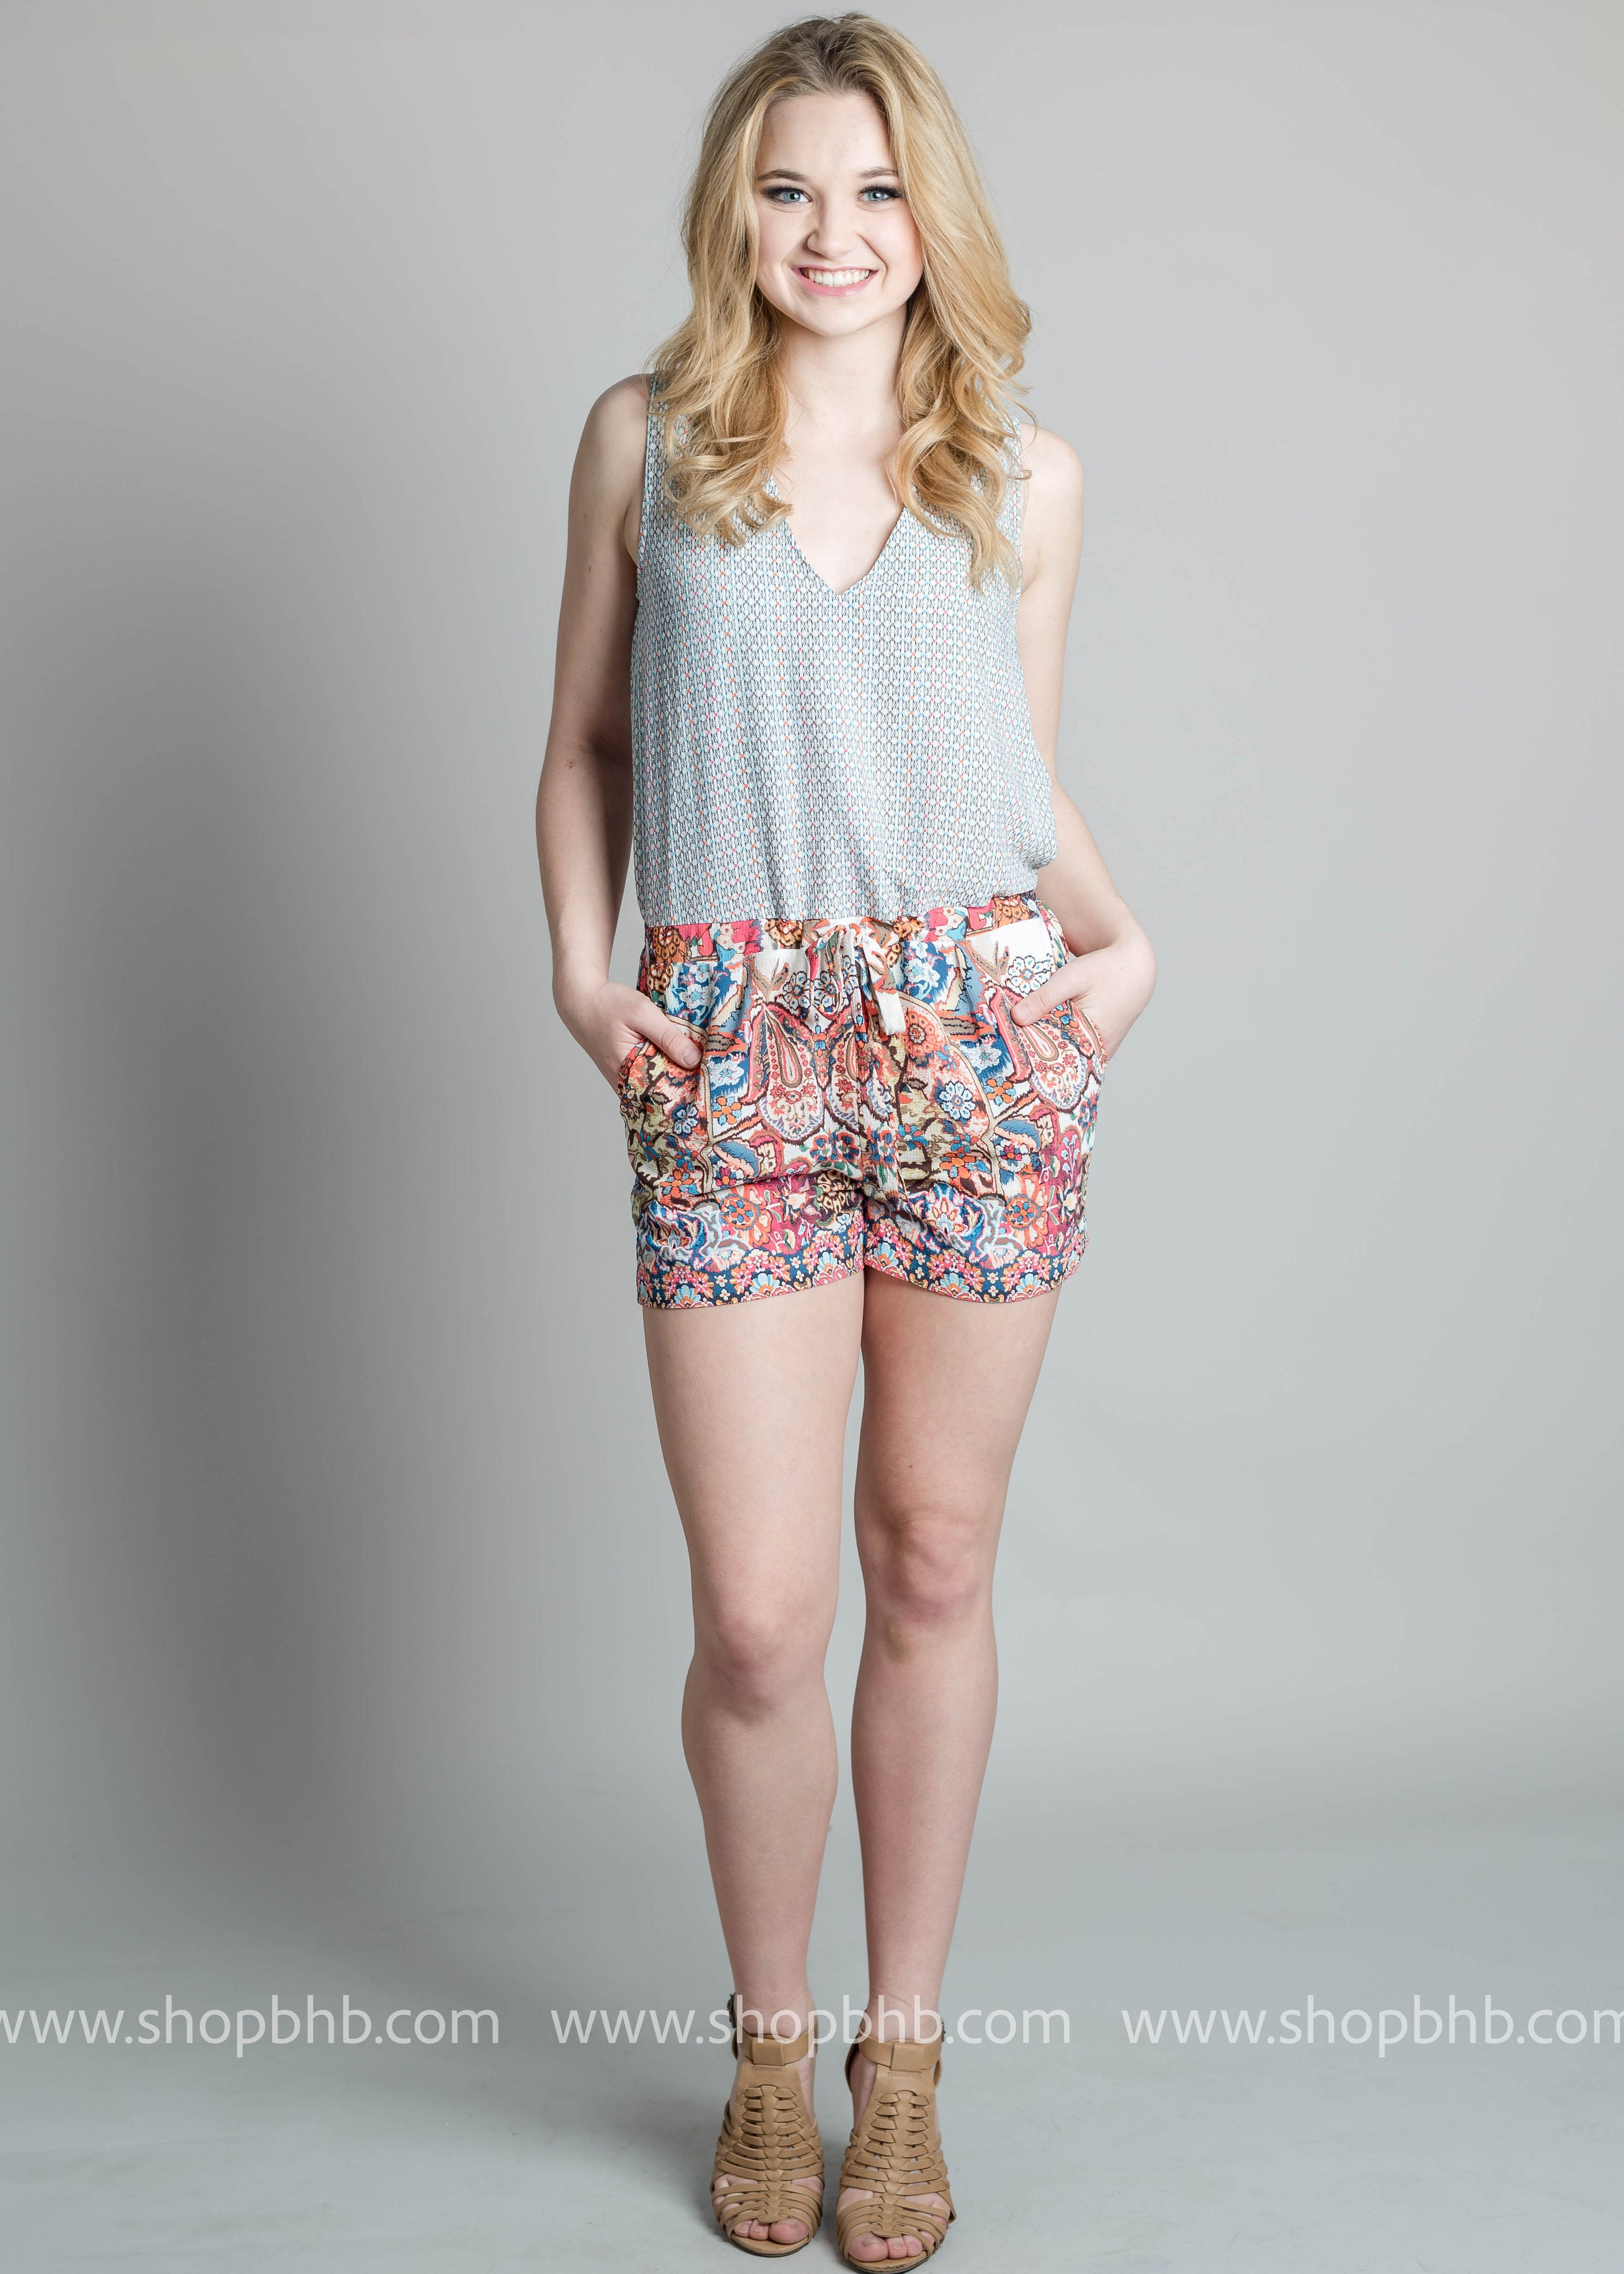 7edd5b1db60f Don t like shorts  Try finding a wide-leg style -if fact it might be  mistaken for a dress!